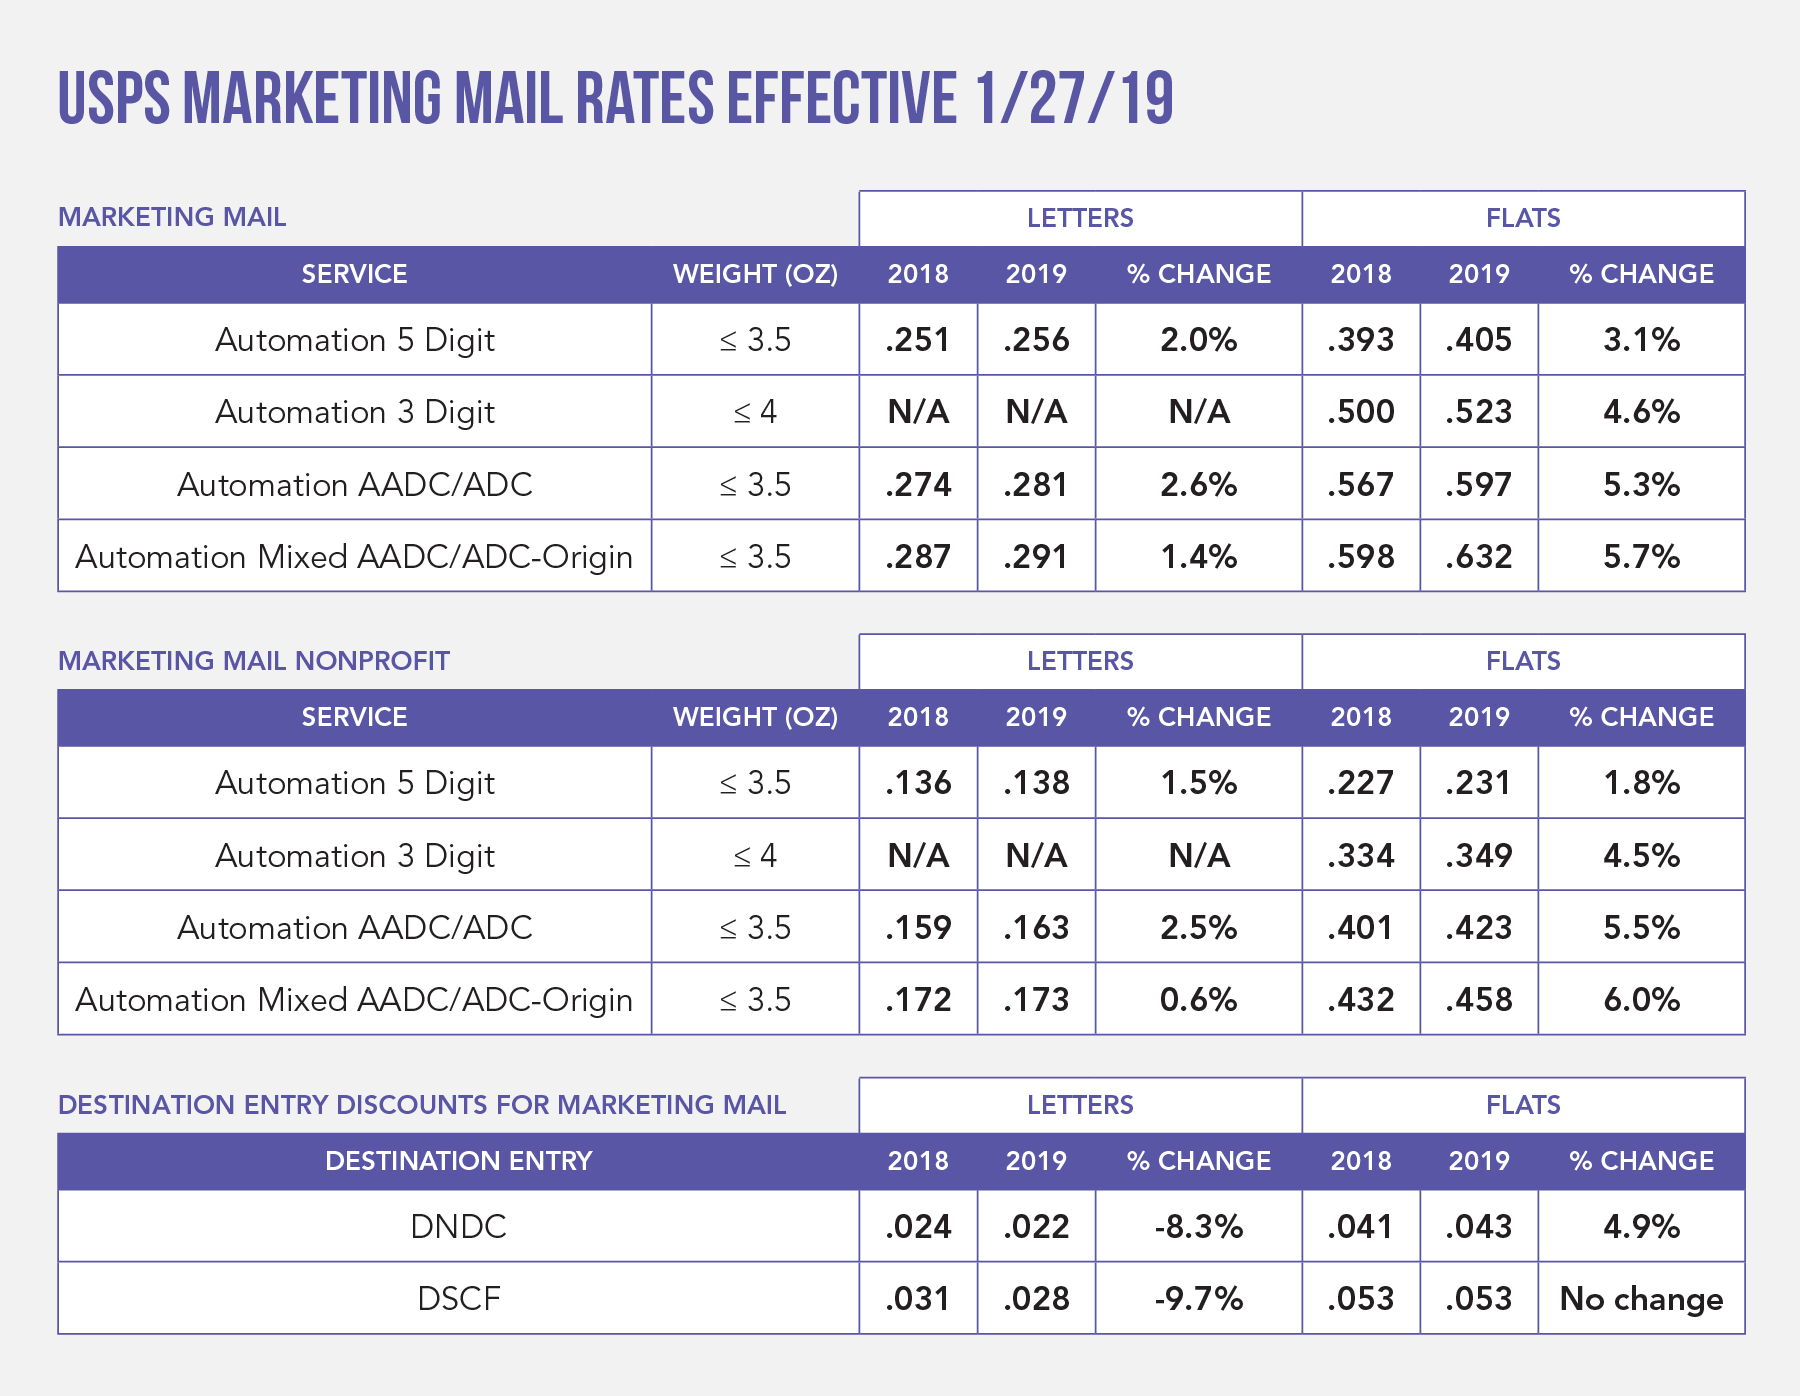 USPS Marketing Mail Rates Effective January 27, 2019